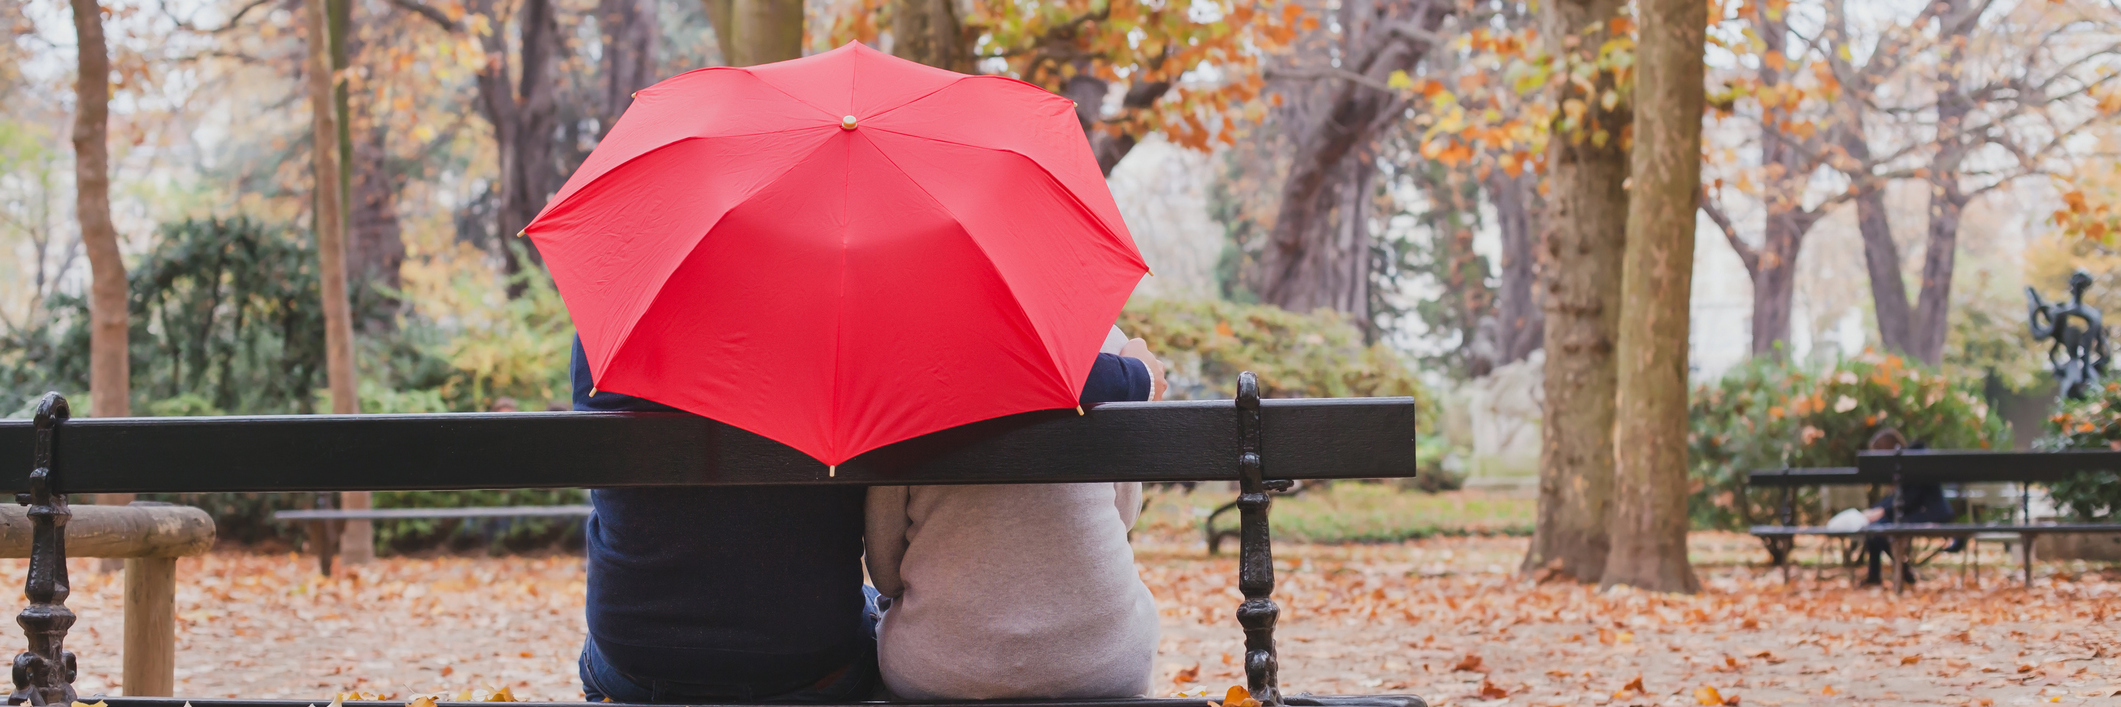 couple sitting on a park bench under a red umbrella